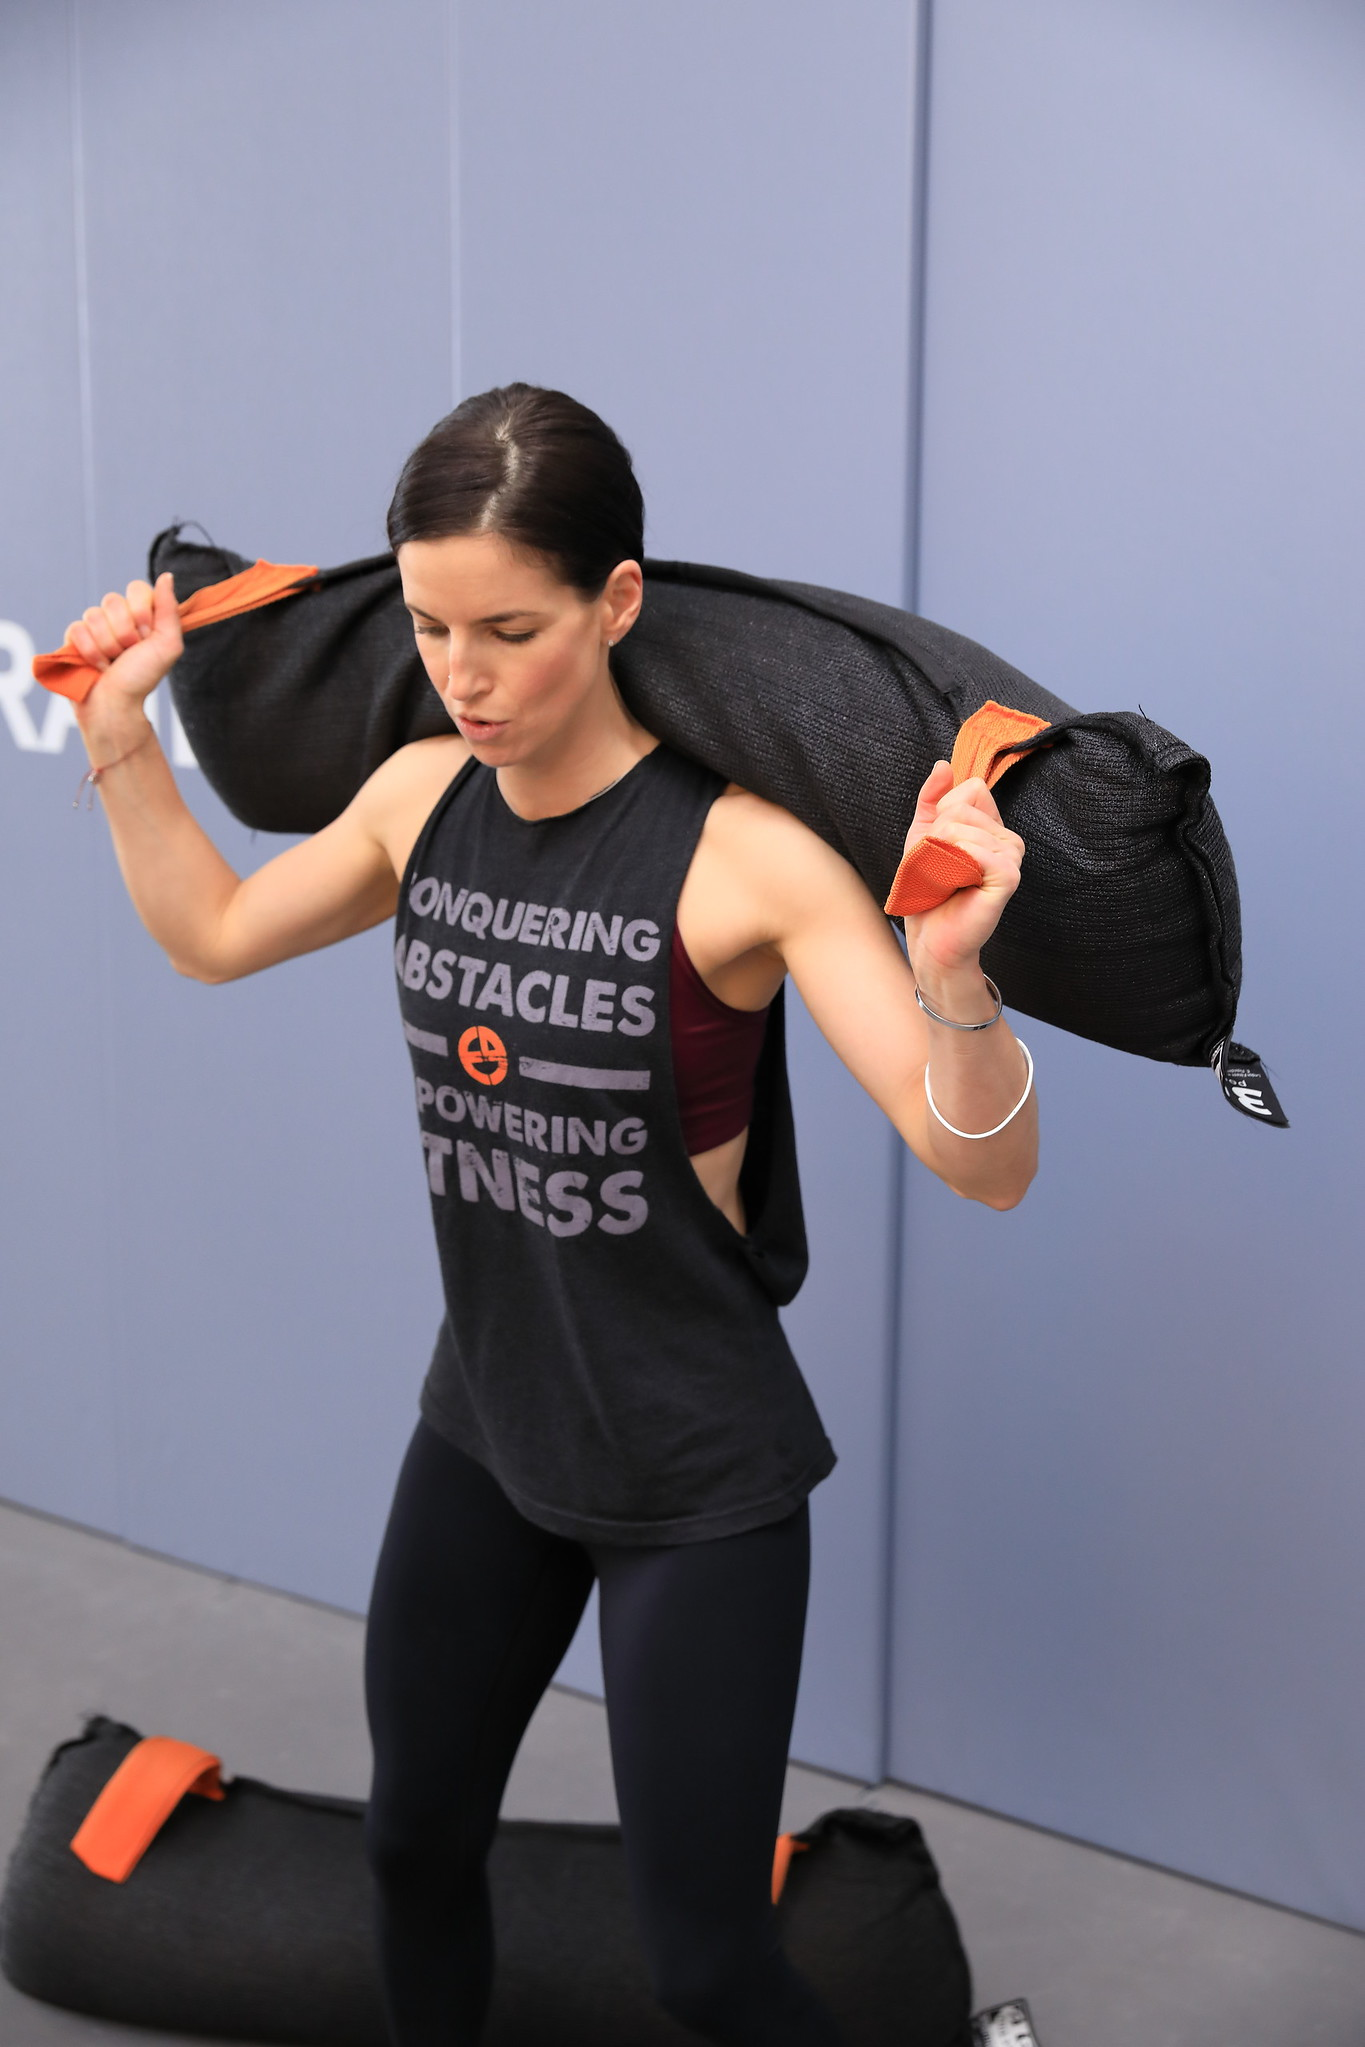 Find out how EPIC trainer, Danielle Midalia rewards herself after a hard workout.